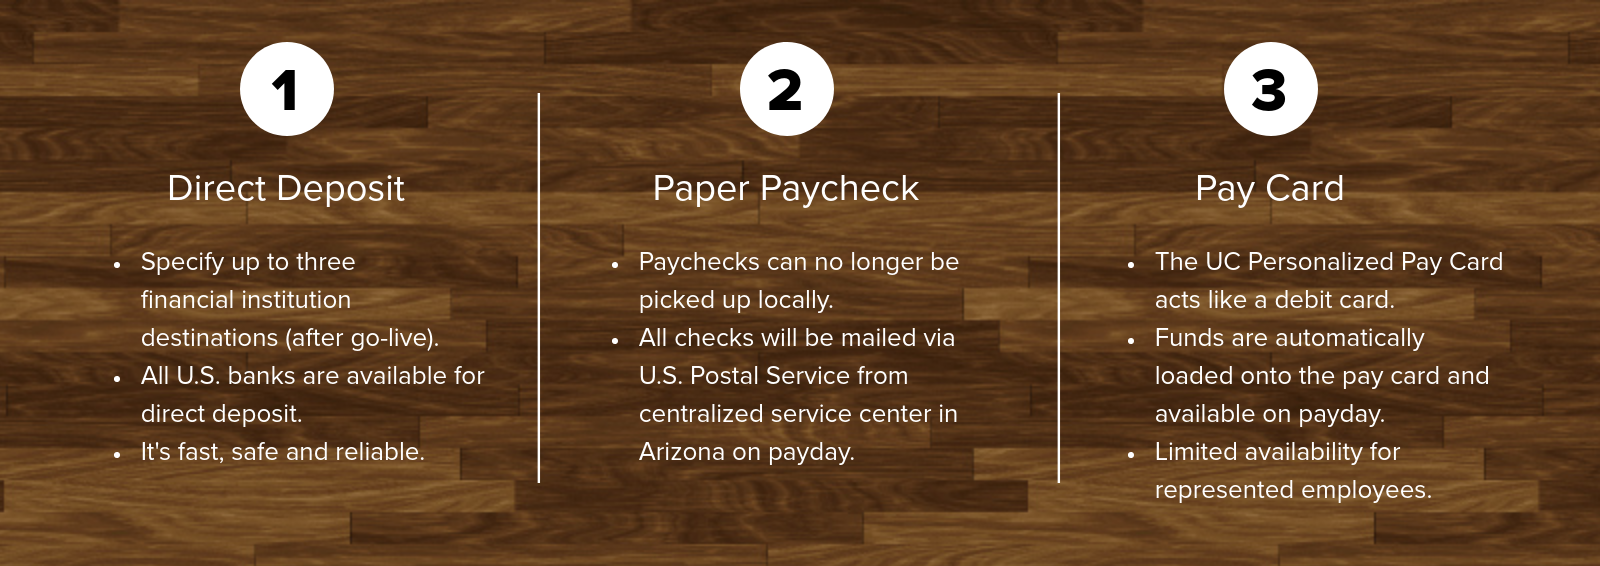 Pay options include direct deposit, paper paycheck and pay card.